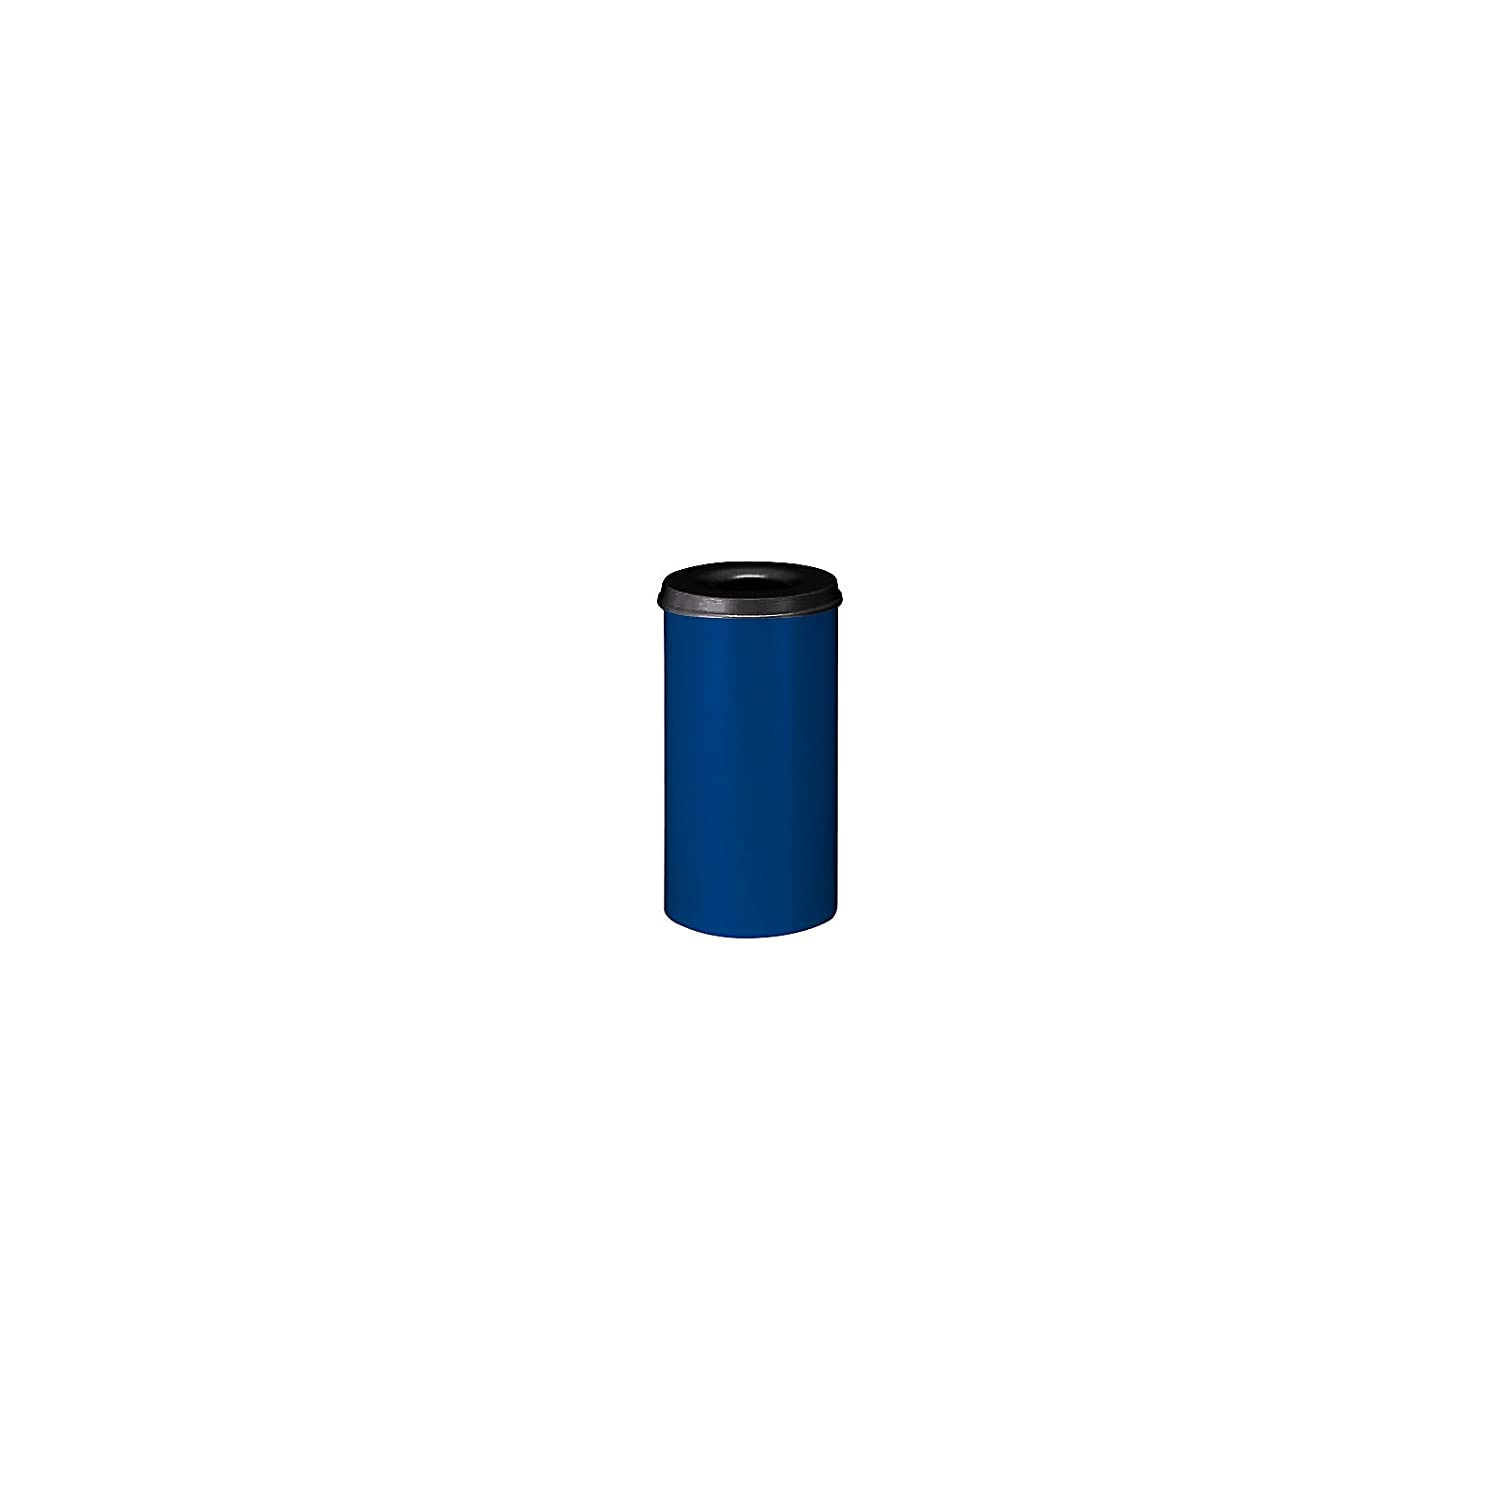 V-Part VB 105000 – Pattumiera 50 litri, corpo blu/con coperchio nero